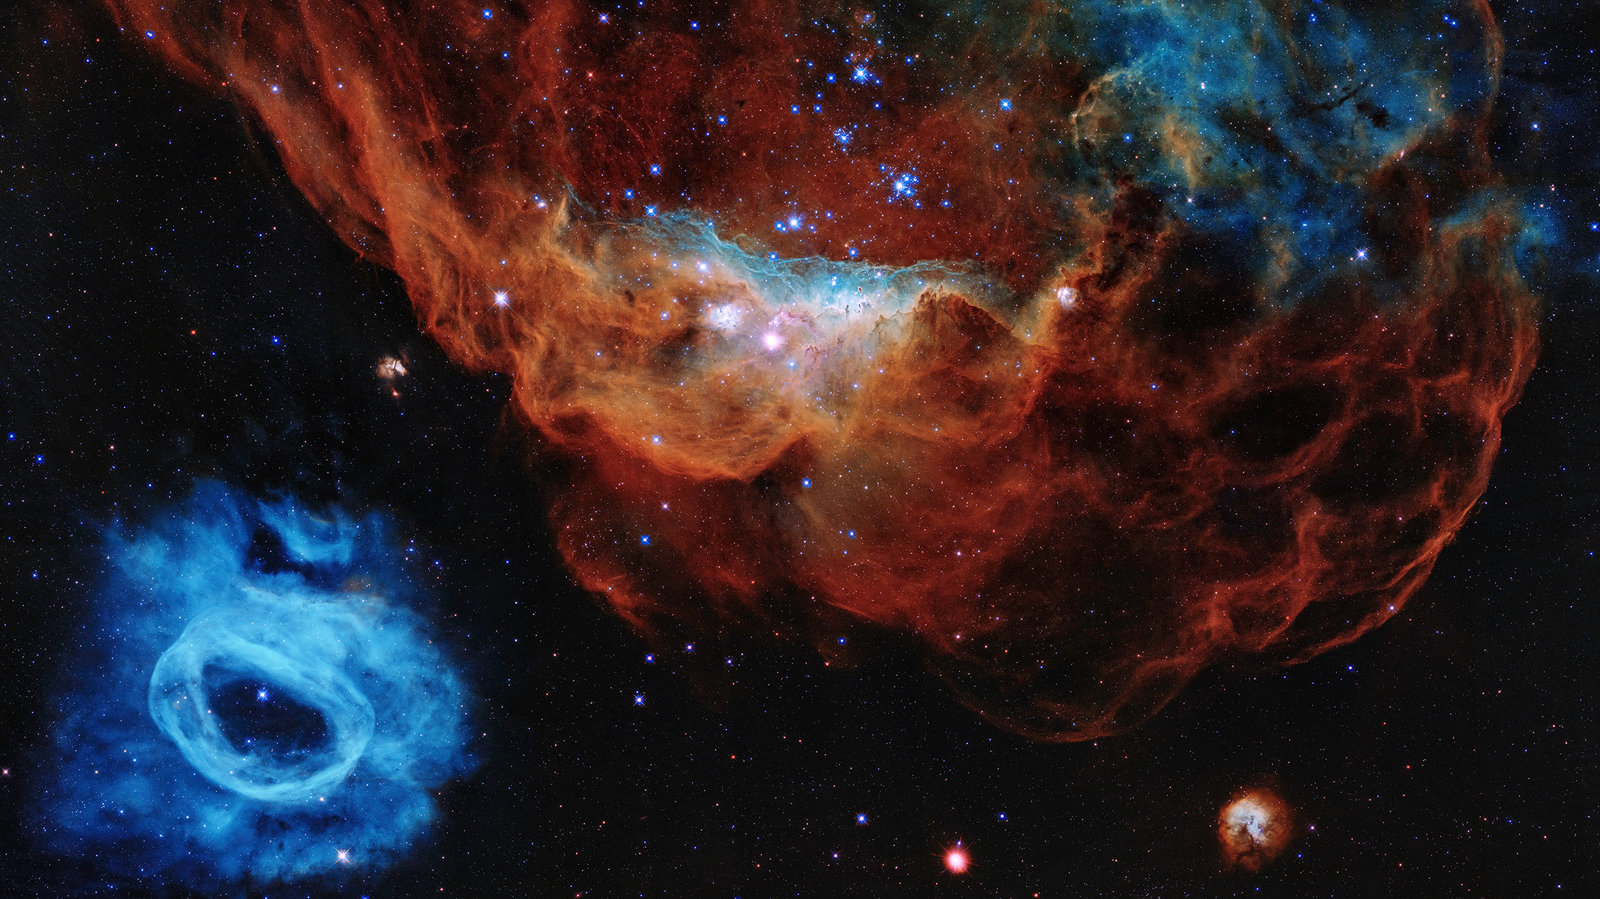 Hubble Space Telescope Releases New 30th Birthday Image